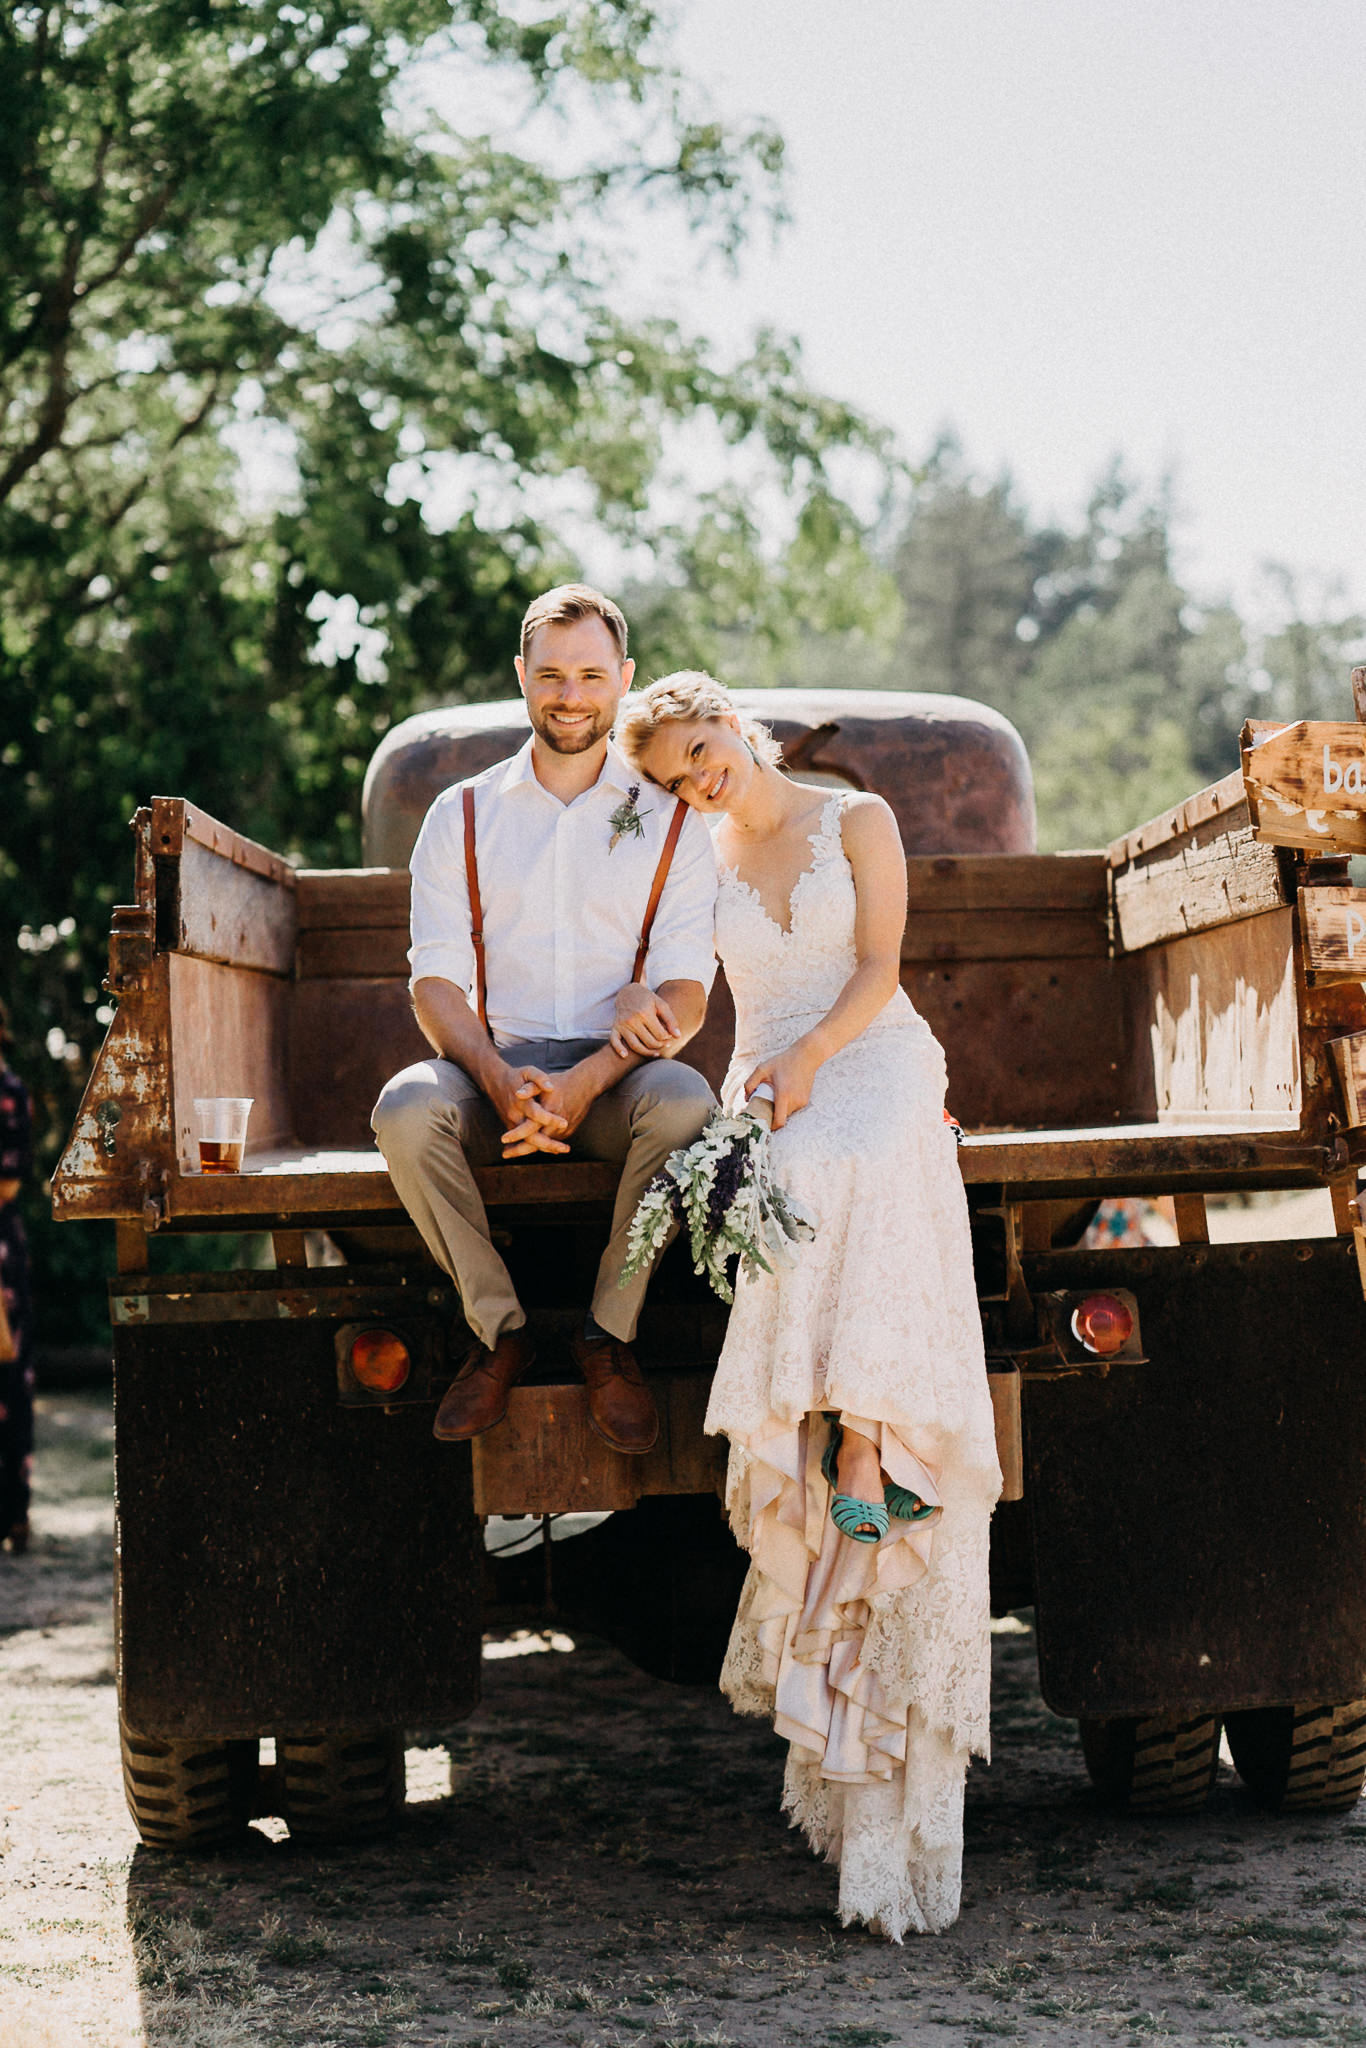 Summerhill-Farms-Portland-Wedding-Photographer-Backyard-Vineyard-56.jpg